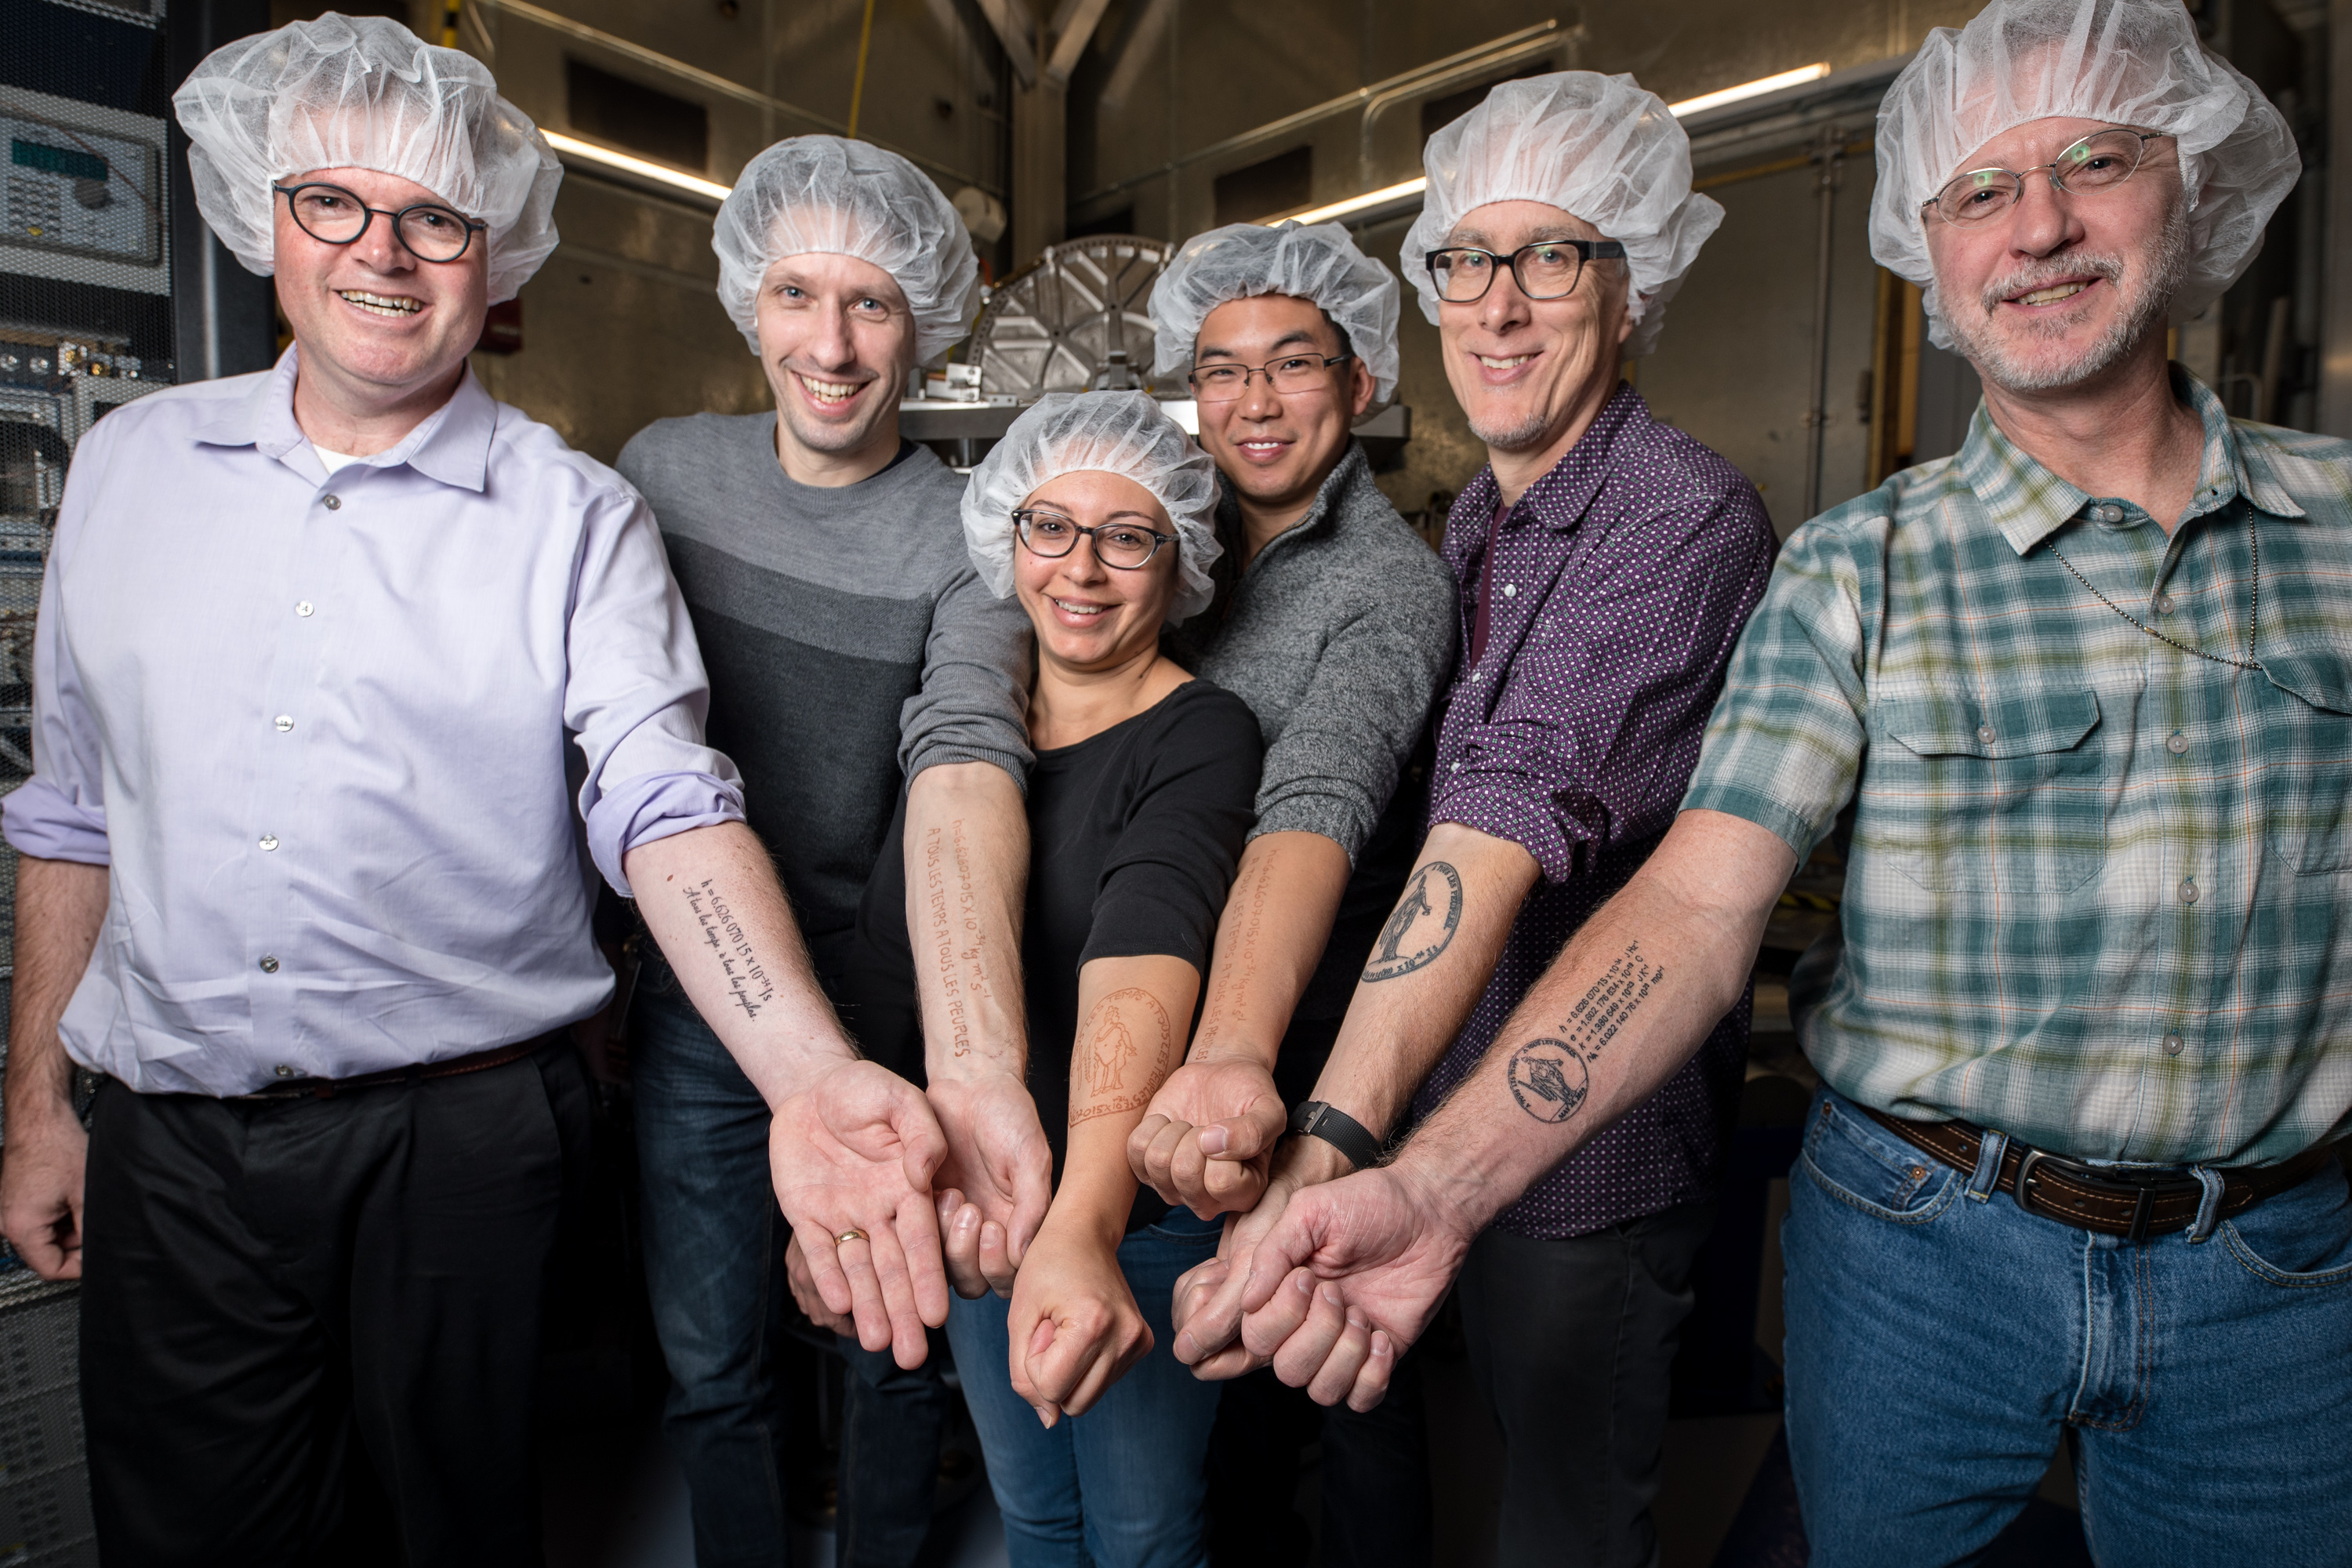 NIST researchers wearing hairnets proudly and happily present their forearms bearing tattoos of the value of the Planck constant